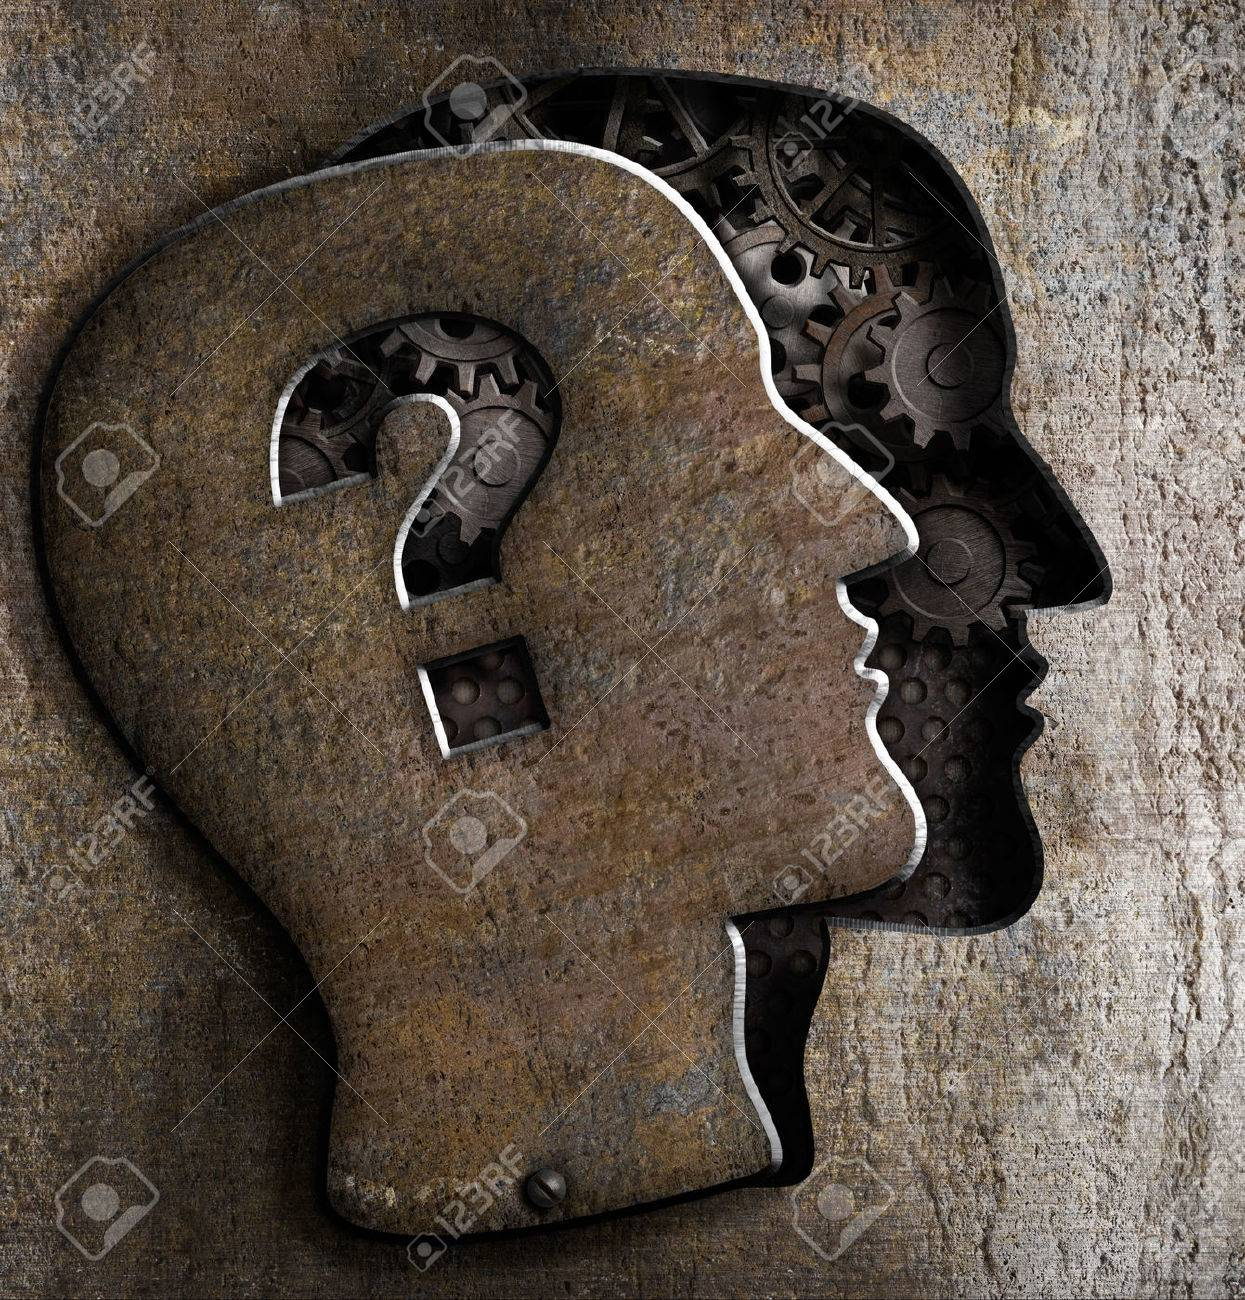 Human brain open with question mark on metal lid Stock Photo - 23118750